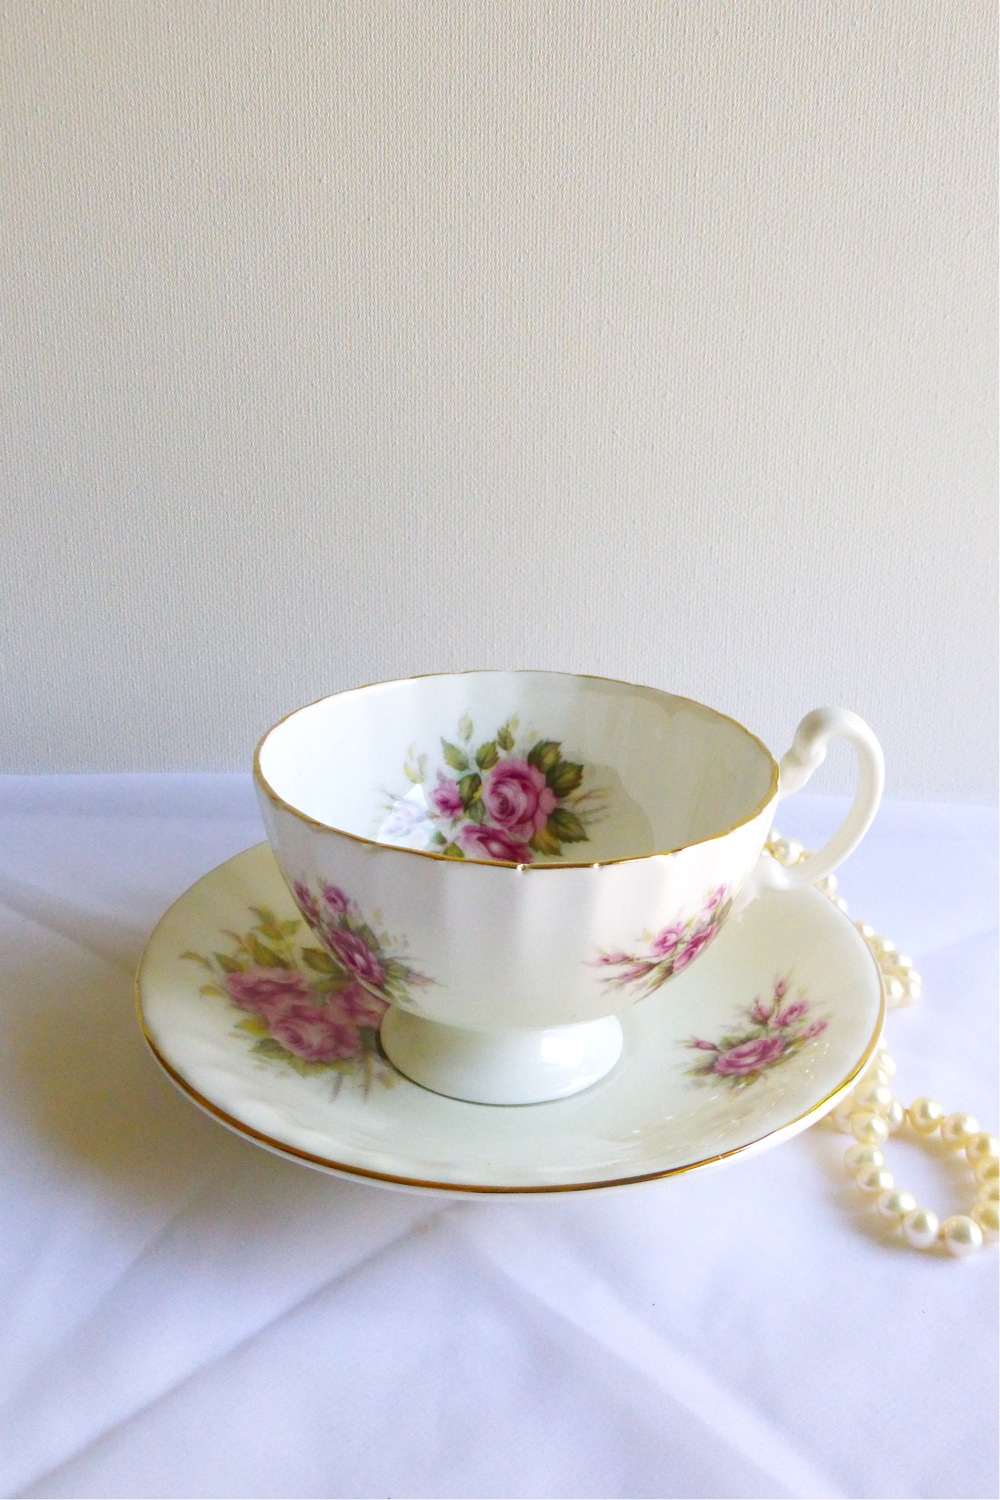 Harleigh China bone china rose teacup and saucer, vintage rose teacup and saucer, pink rose china, pink rose teacup, Vintage Tea Treasures on Etsy, Etsy shop Vintage Tea Treasures, vintage tea ware, vintage gifts, English bone china, vintage English tea ware, Etsy shop update